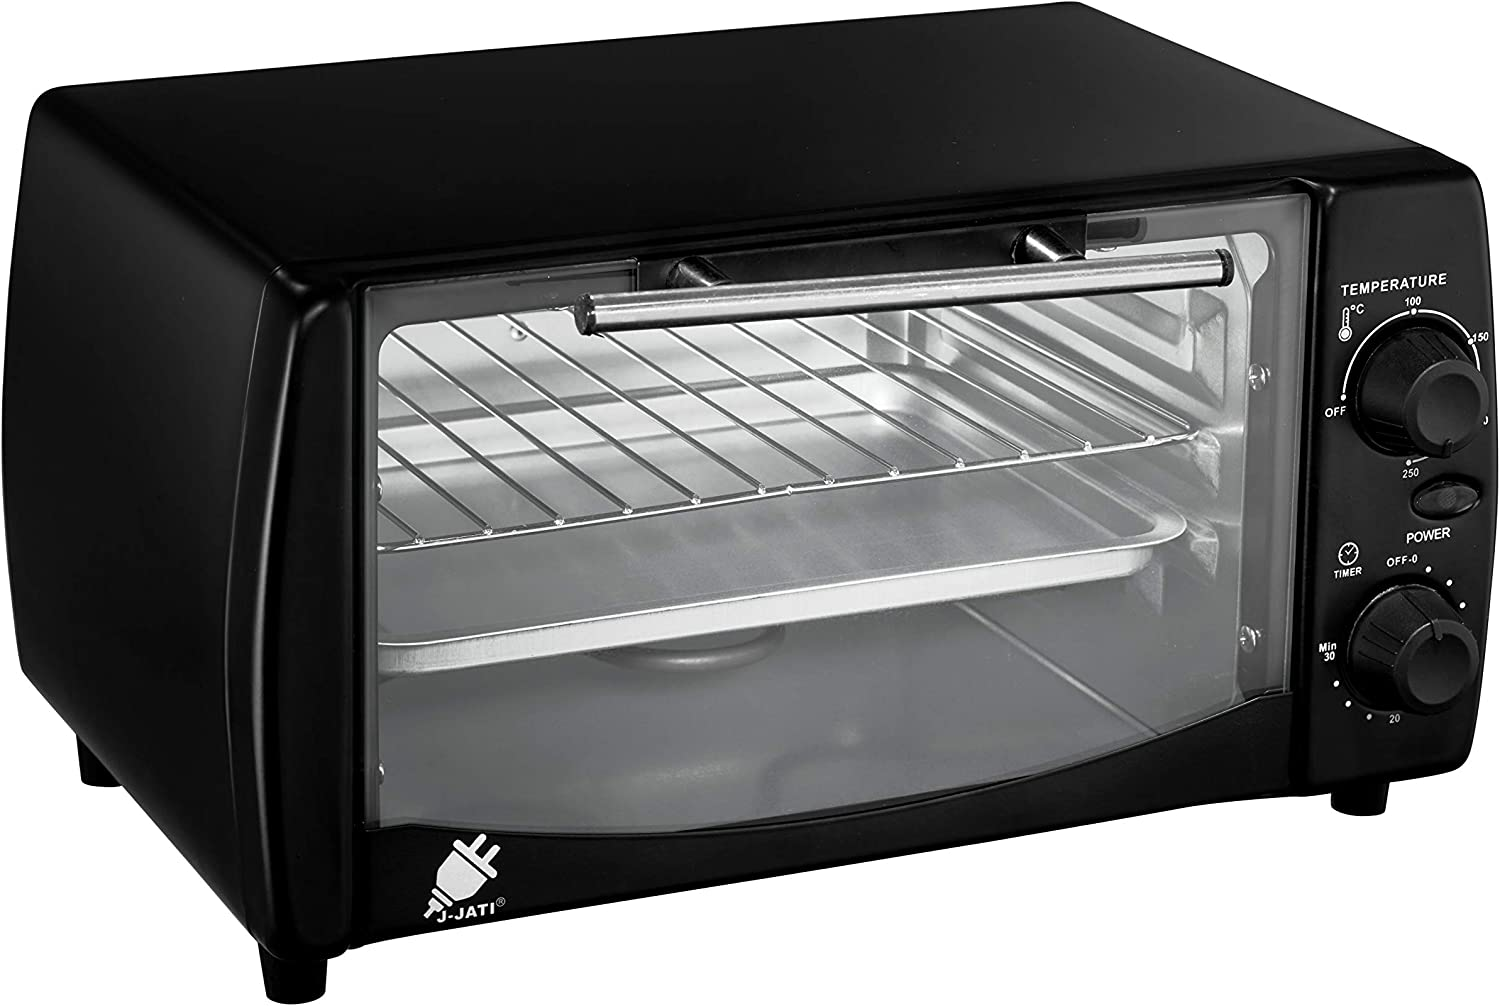 J-Jati Countertop oven, Convection oven, Countertop Toaster Oven Electric. Toast, Bake, and Broil. glass door, Thermostat in celcius, Non-stick tray, Indicator light, 800W, SK-12 (Black)